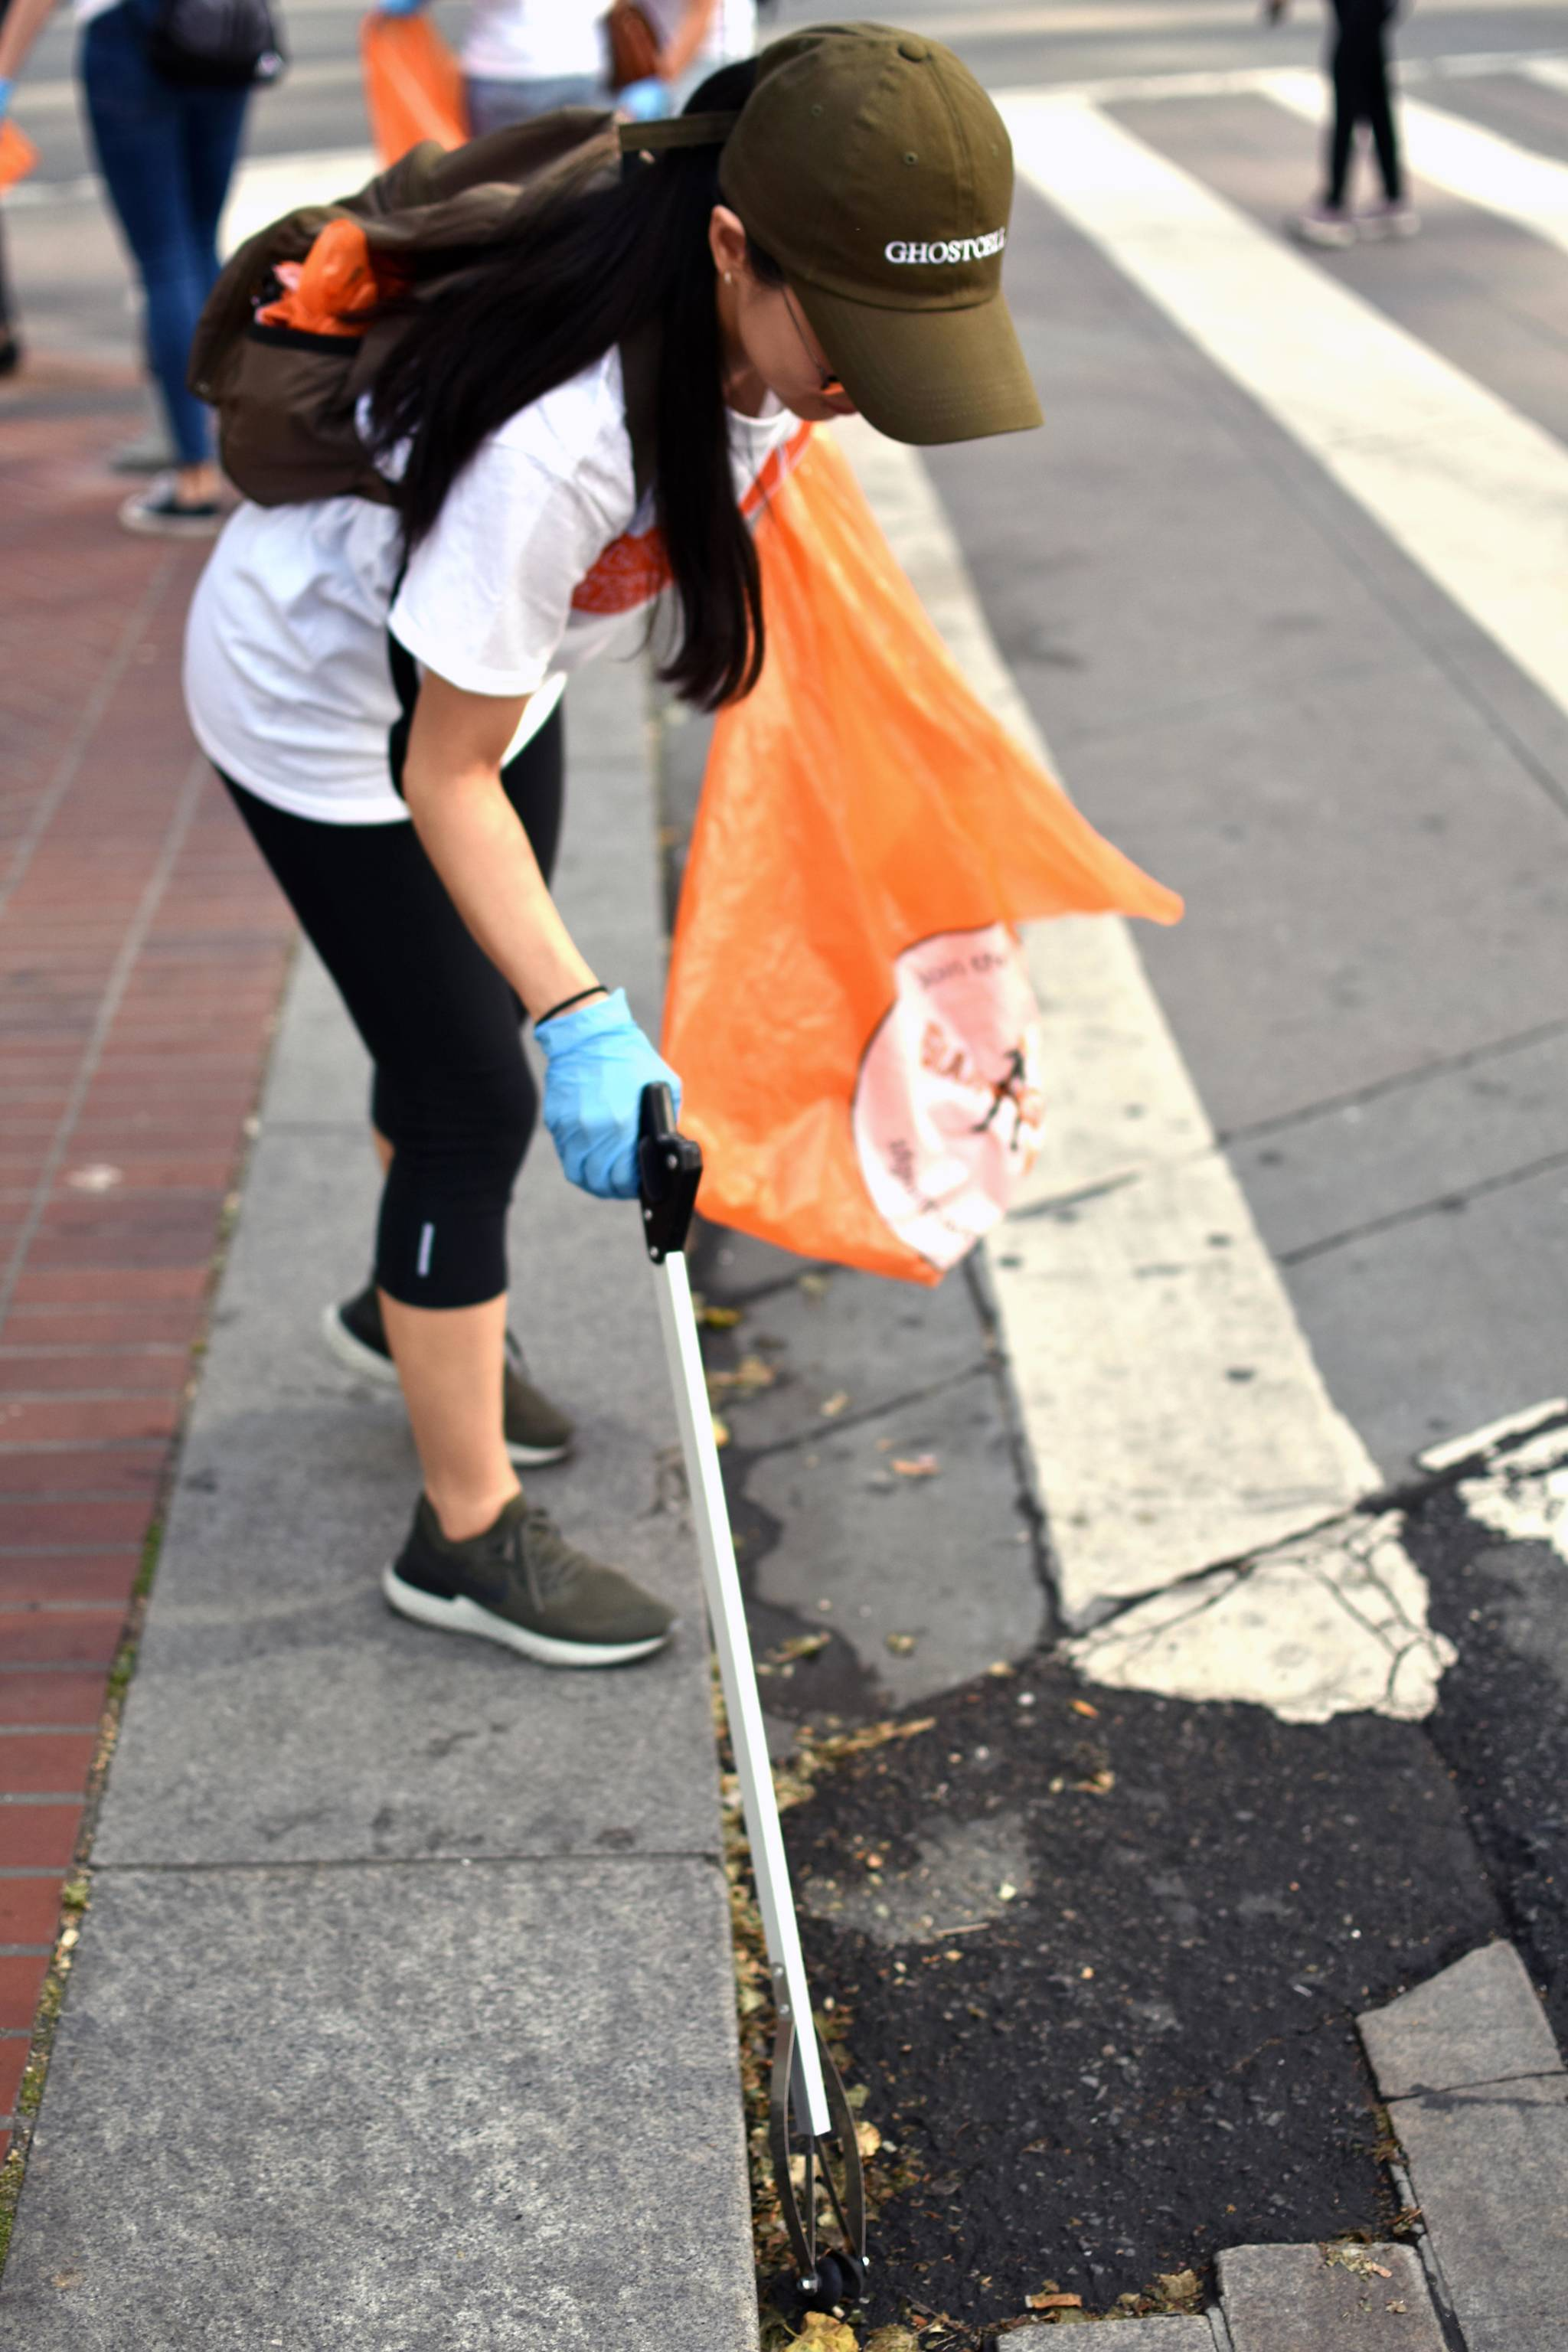 Over 600 volunteers help clean up and beautify San Francisco's streets